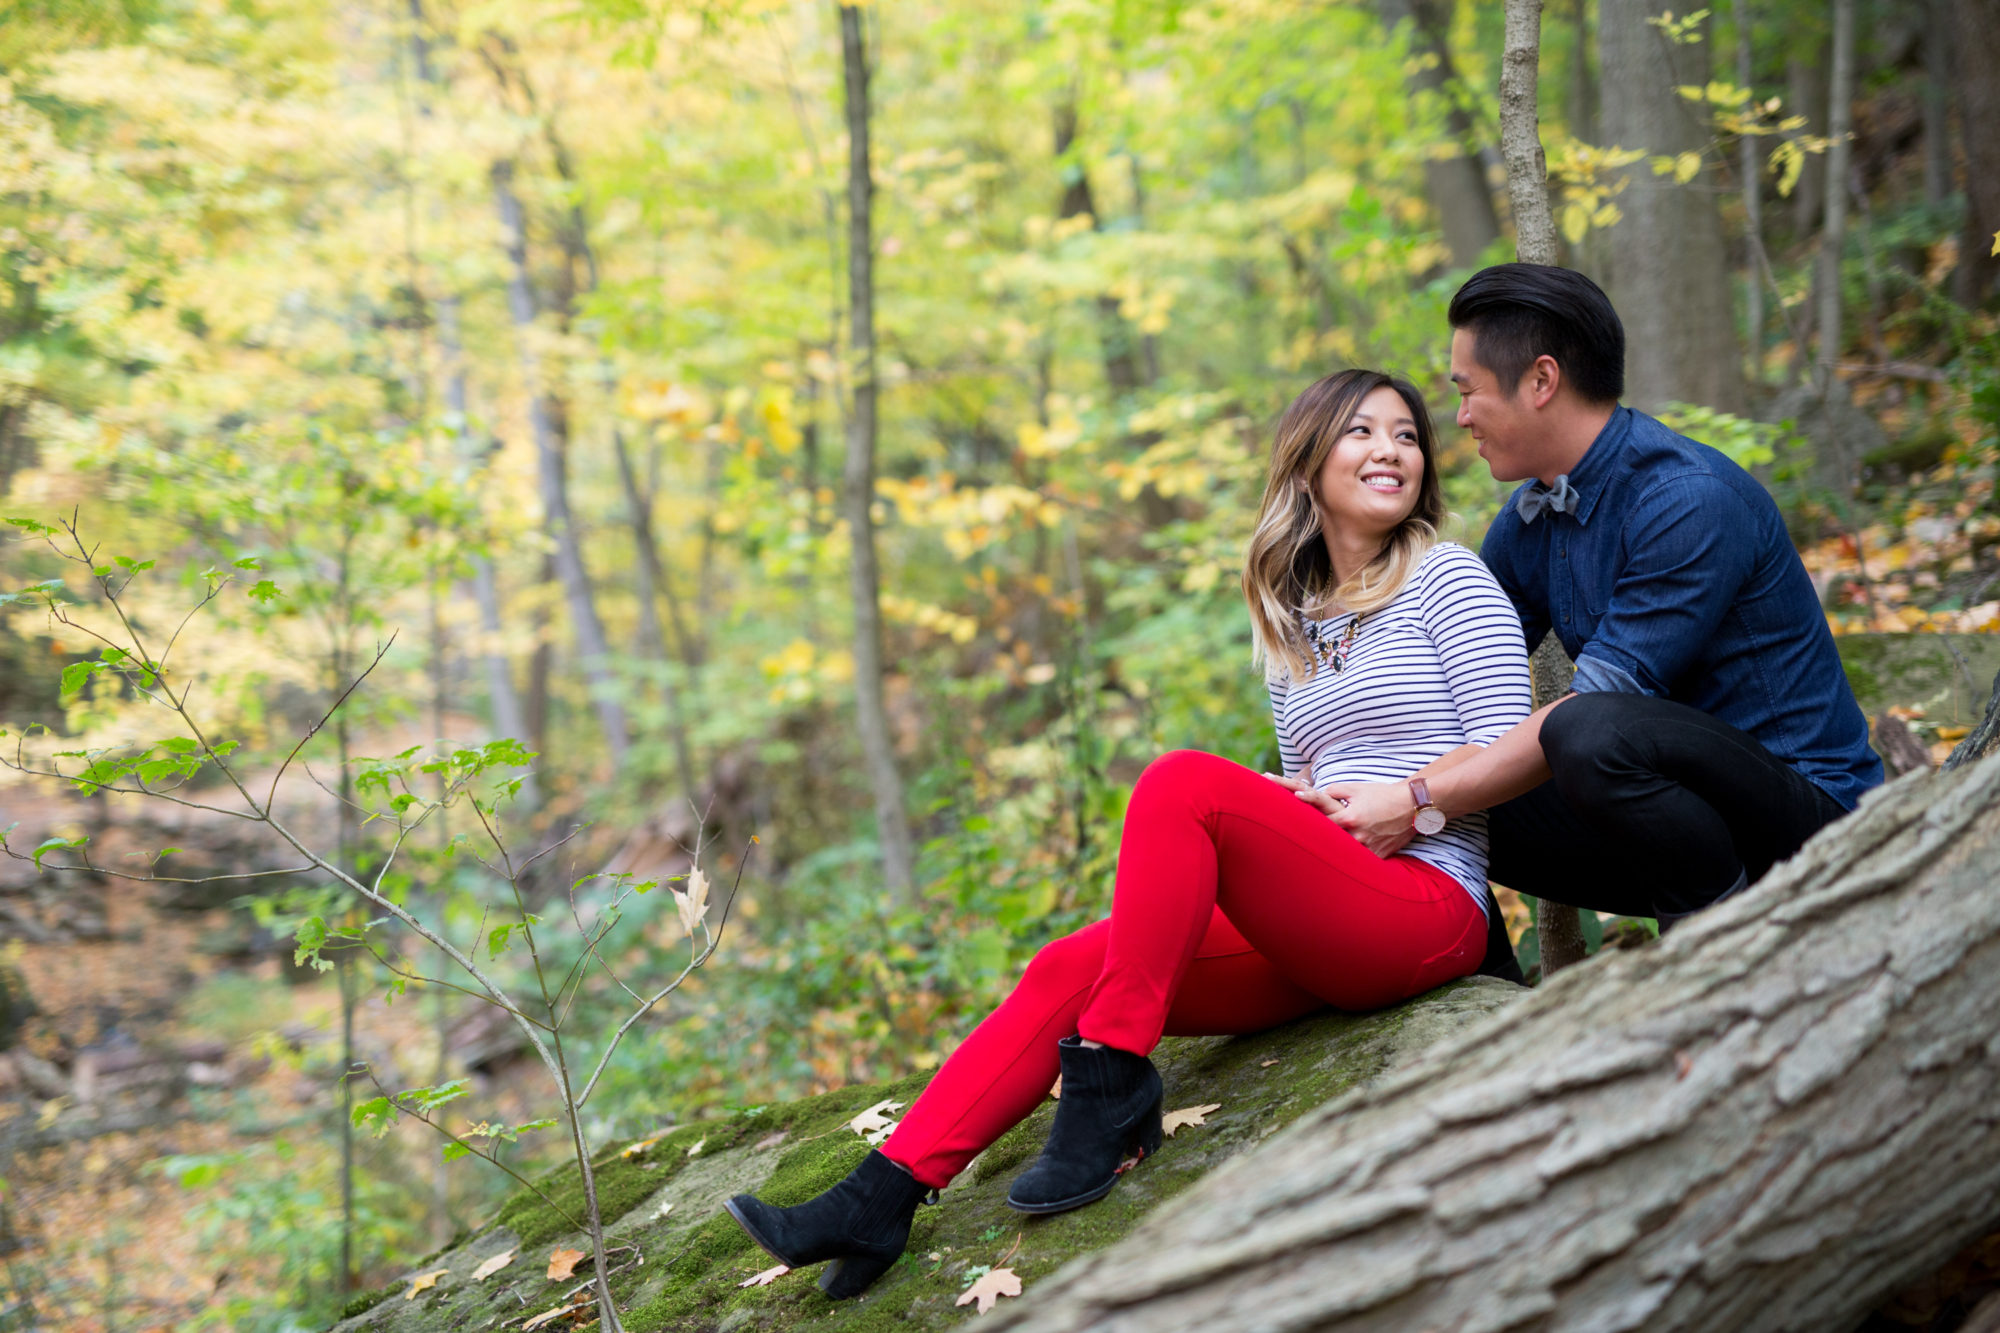 Nature Climb Cuddle Engagement Shoot Tiffany Falls Waterfall Zsuzsi Pal Photography